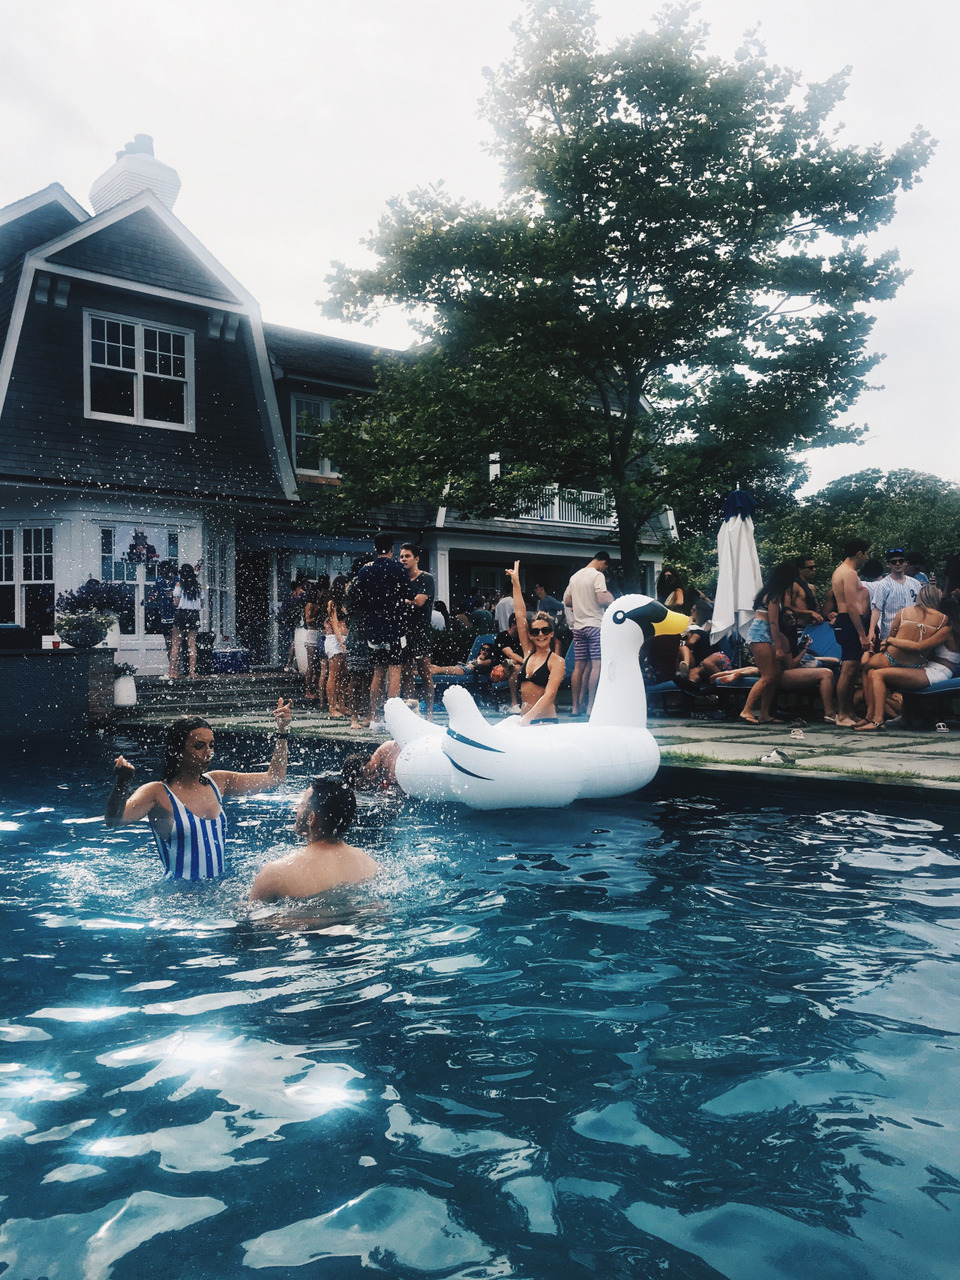 float, pool party, and fun image